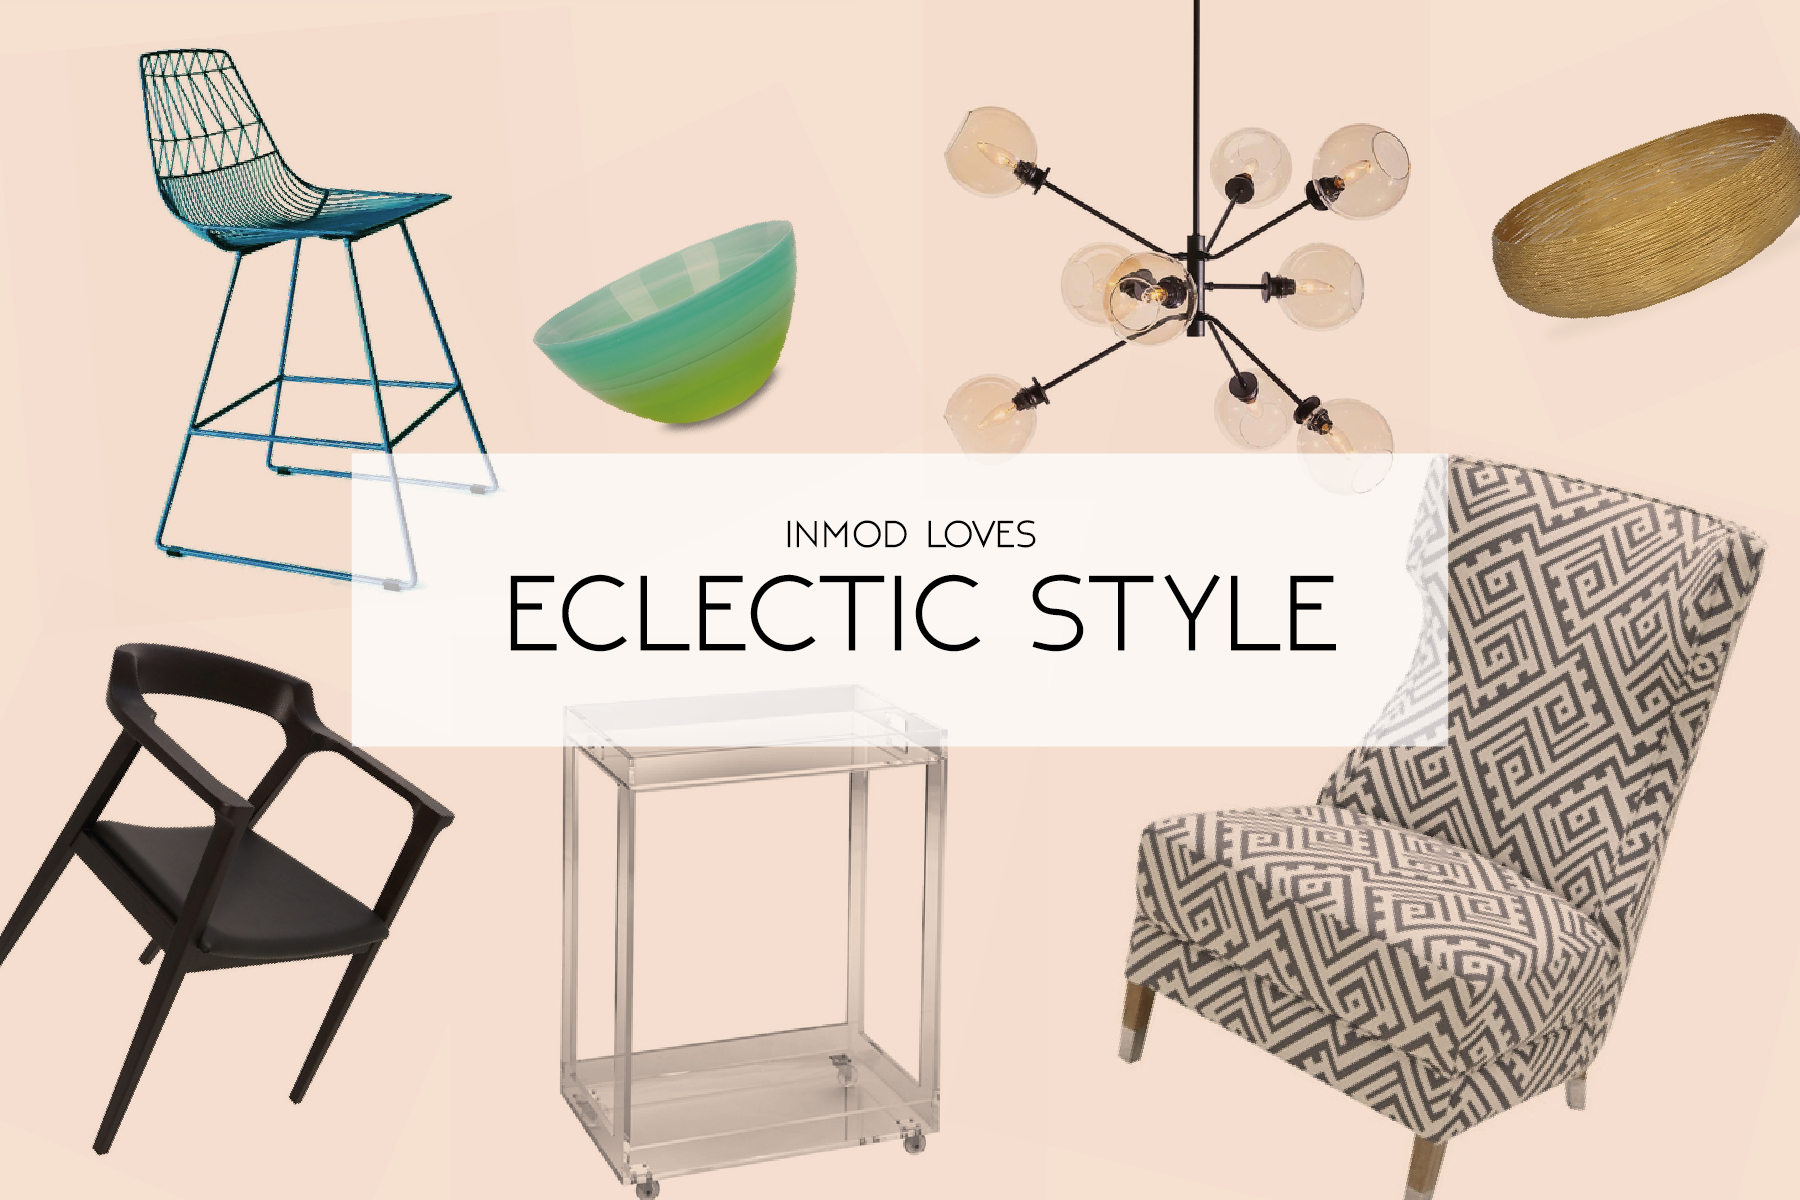 eclecticstyle-01